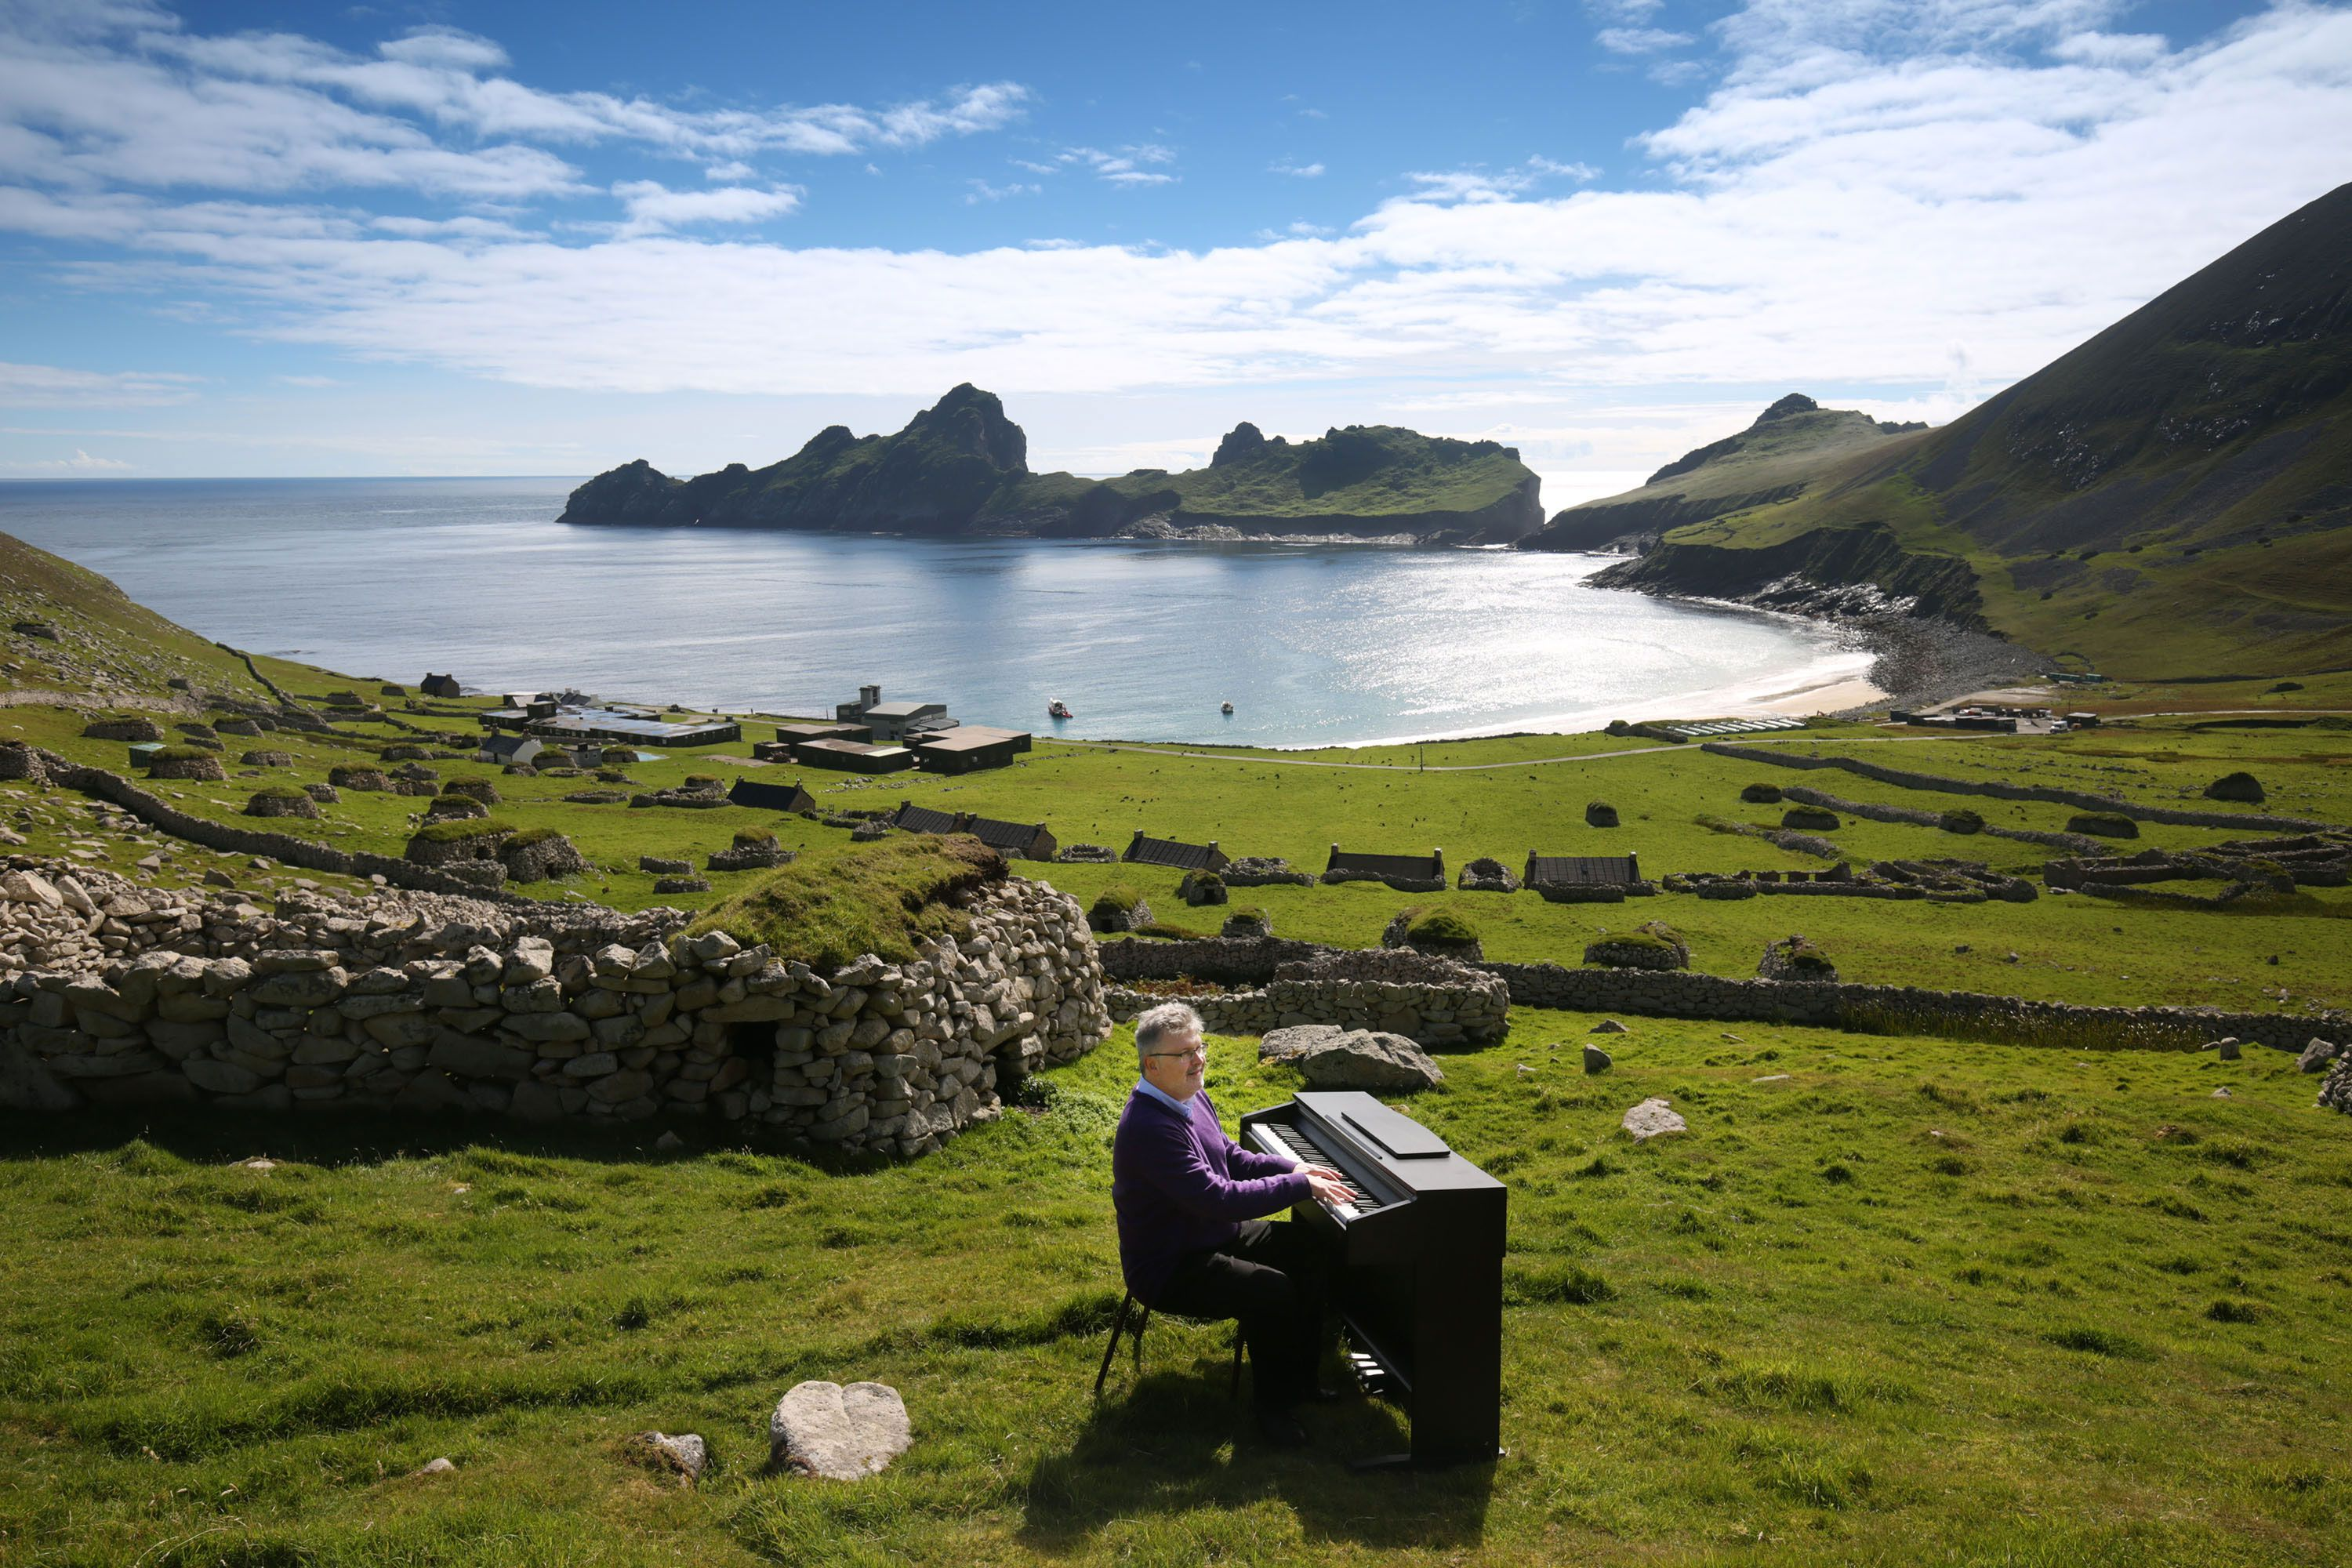 St. Kilda The Northern Highlands and the Western Isles, Lost music of St Kilda was discovered, went straight to number one ...